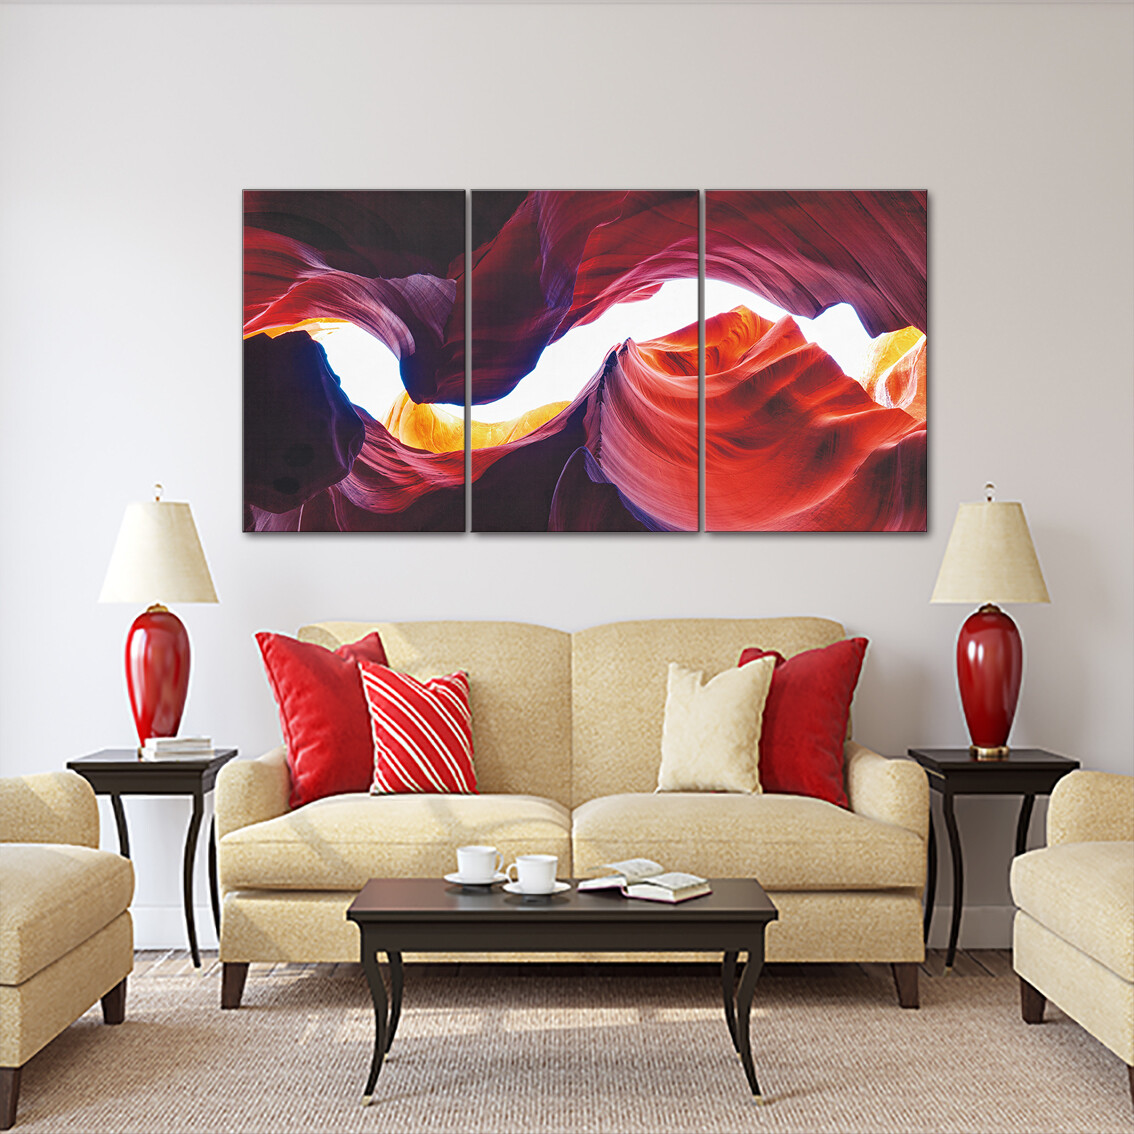 Antelope Canyon (3 Panels) | Printed on Frameless Acrylic Glass - Modern Luxury Acrylic Glass Wall art - Ready to Hang